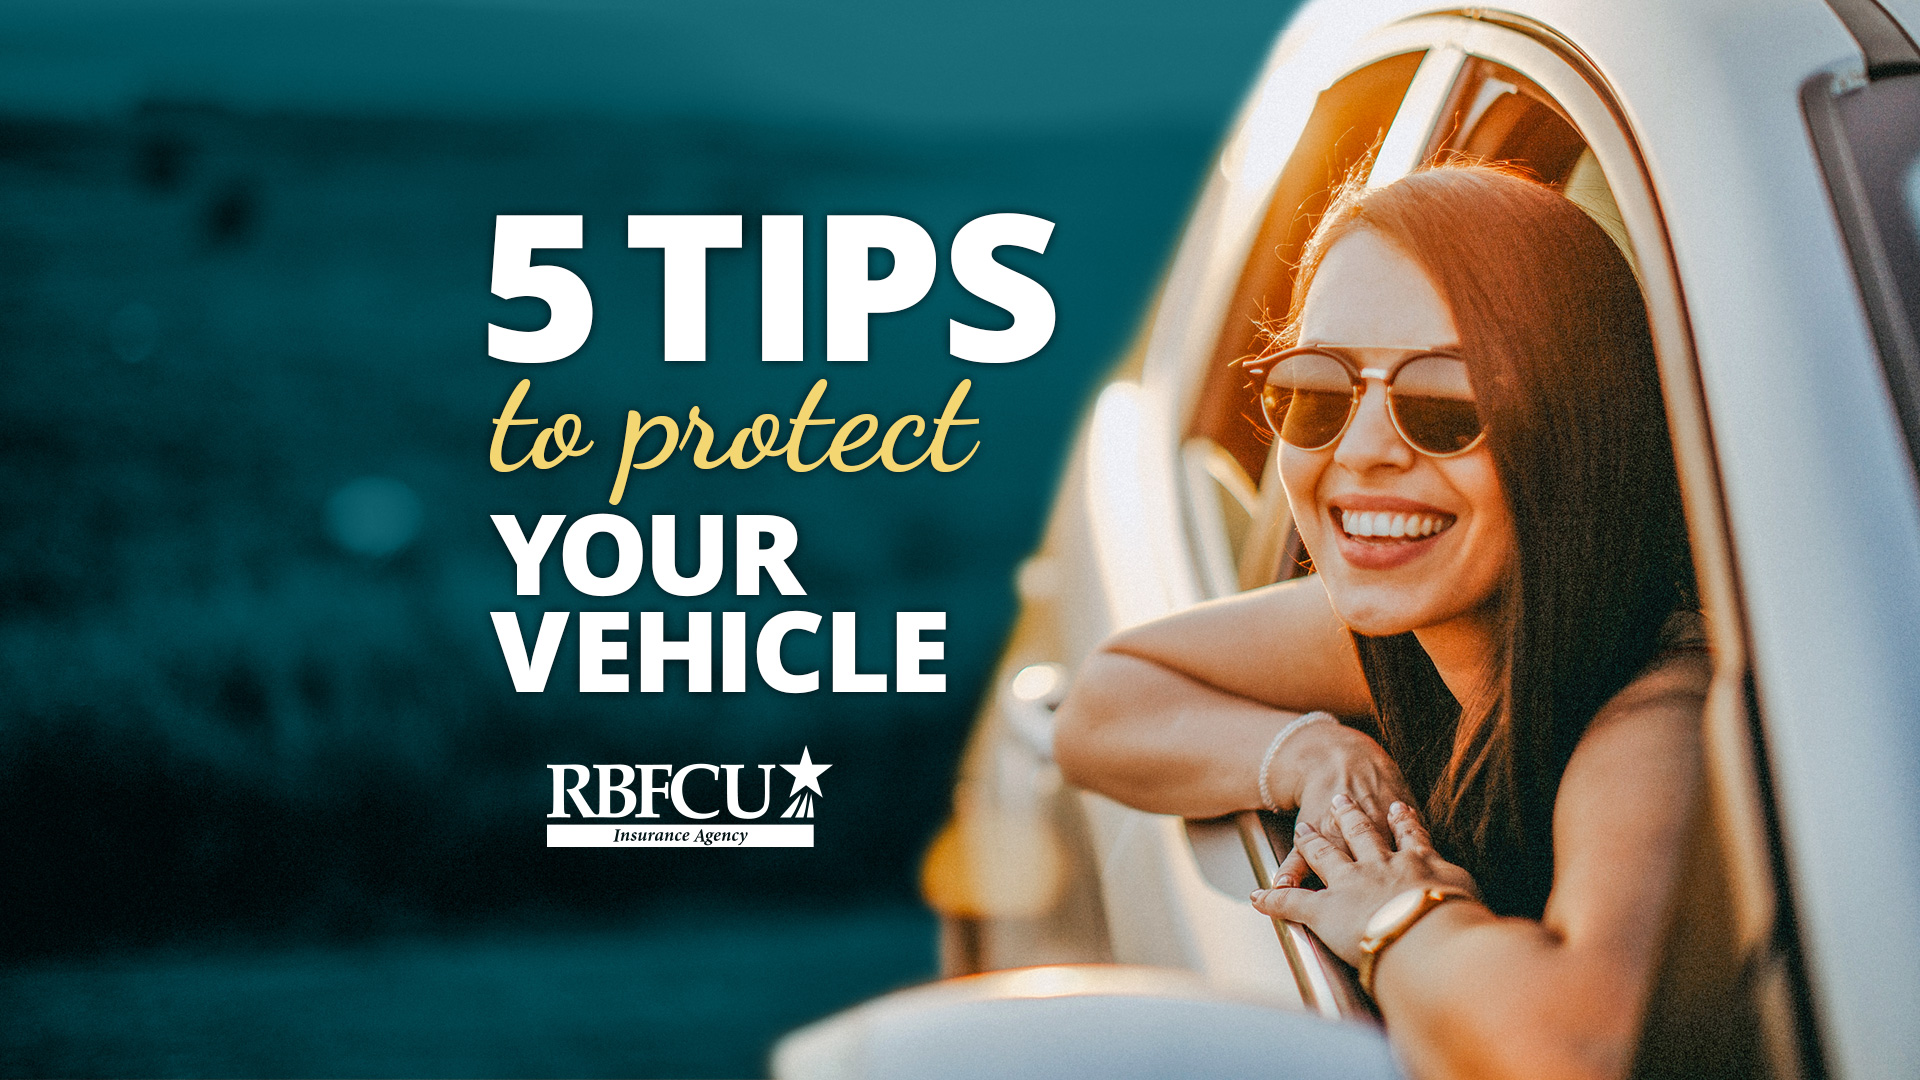 5TipstoProtectYourVehiclefromTheft